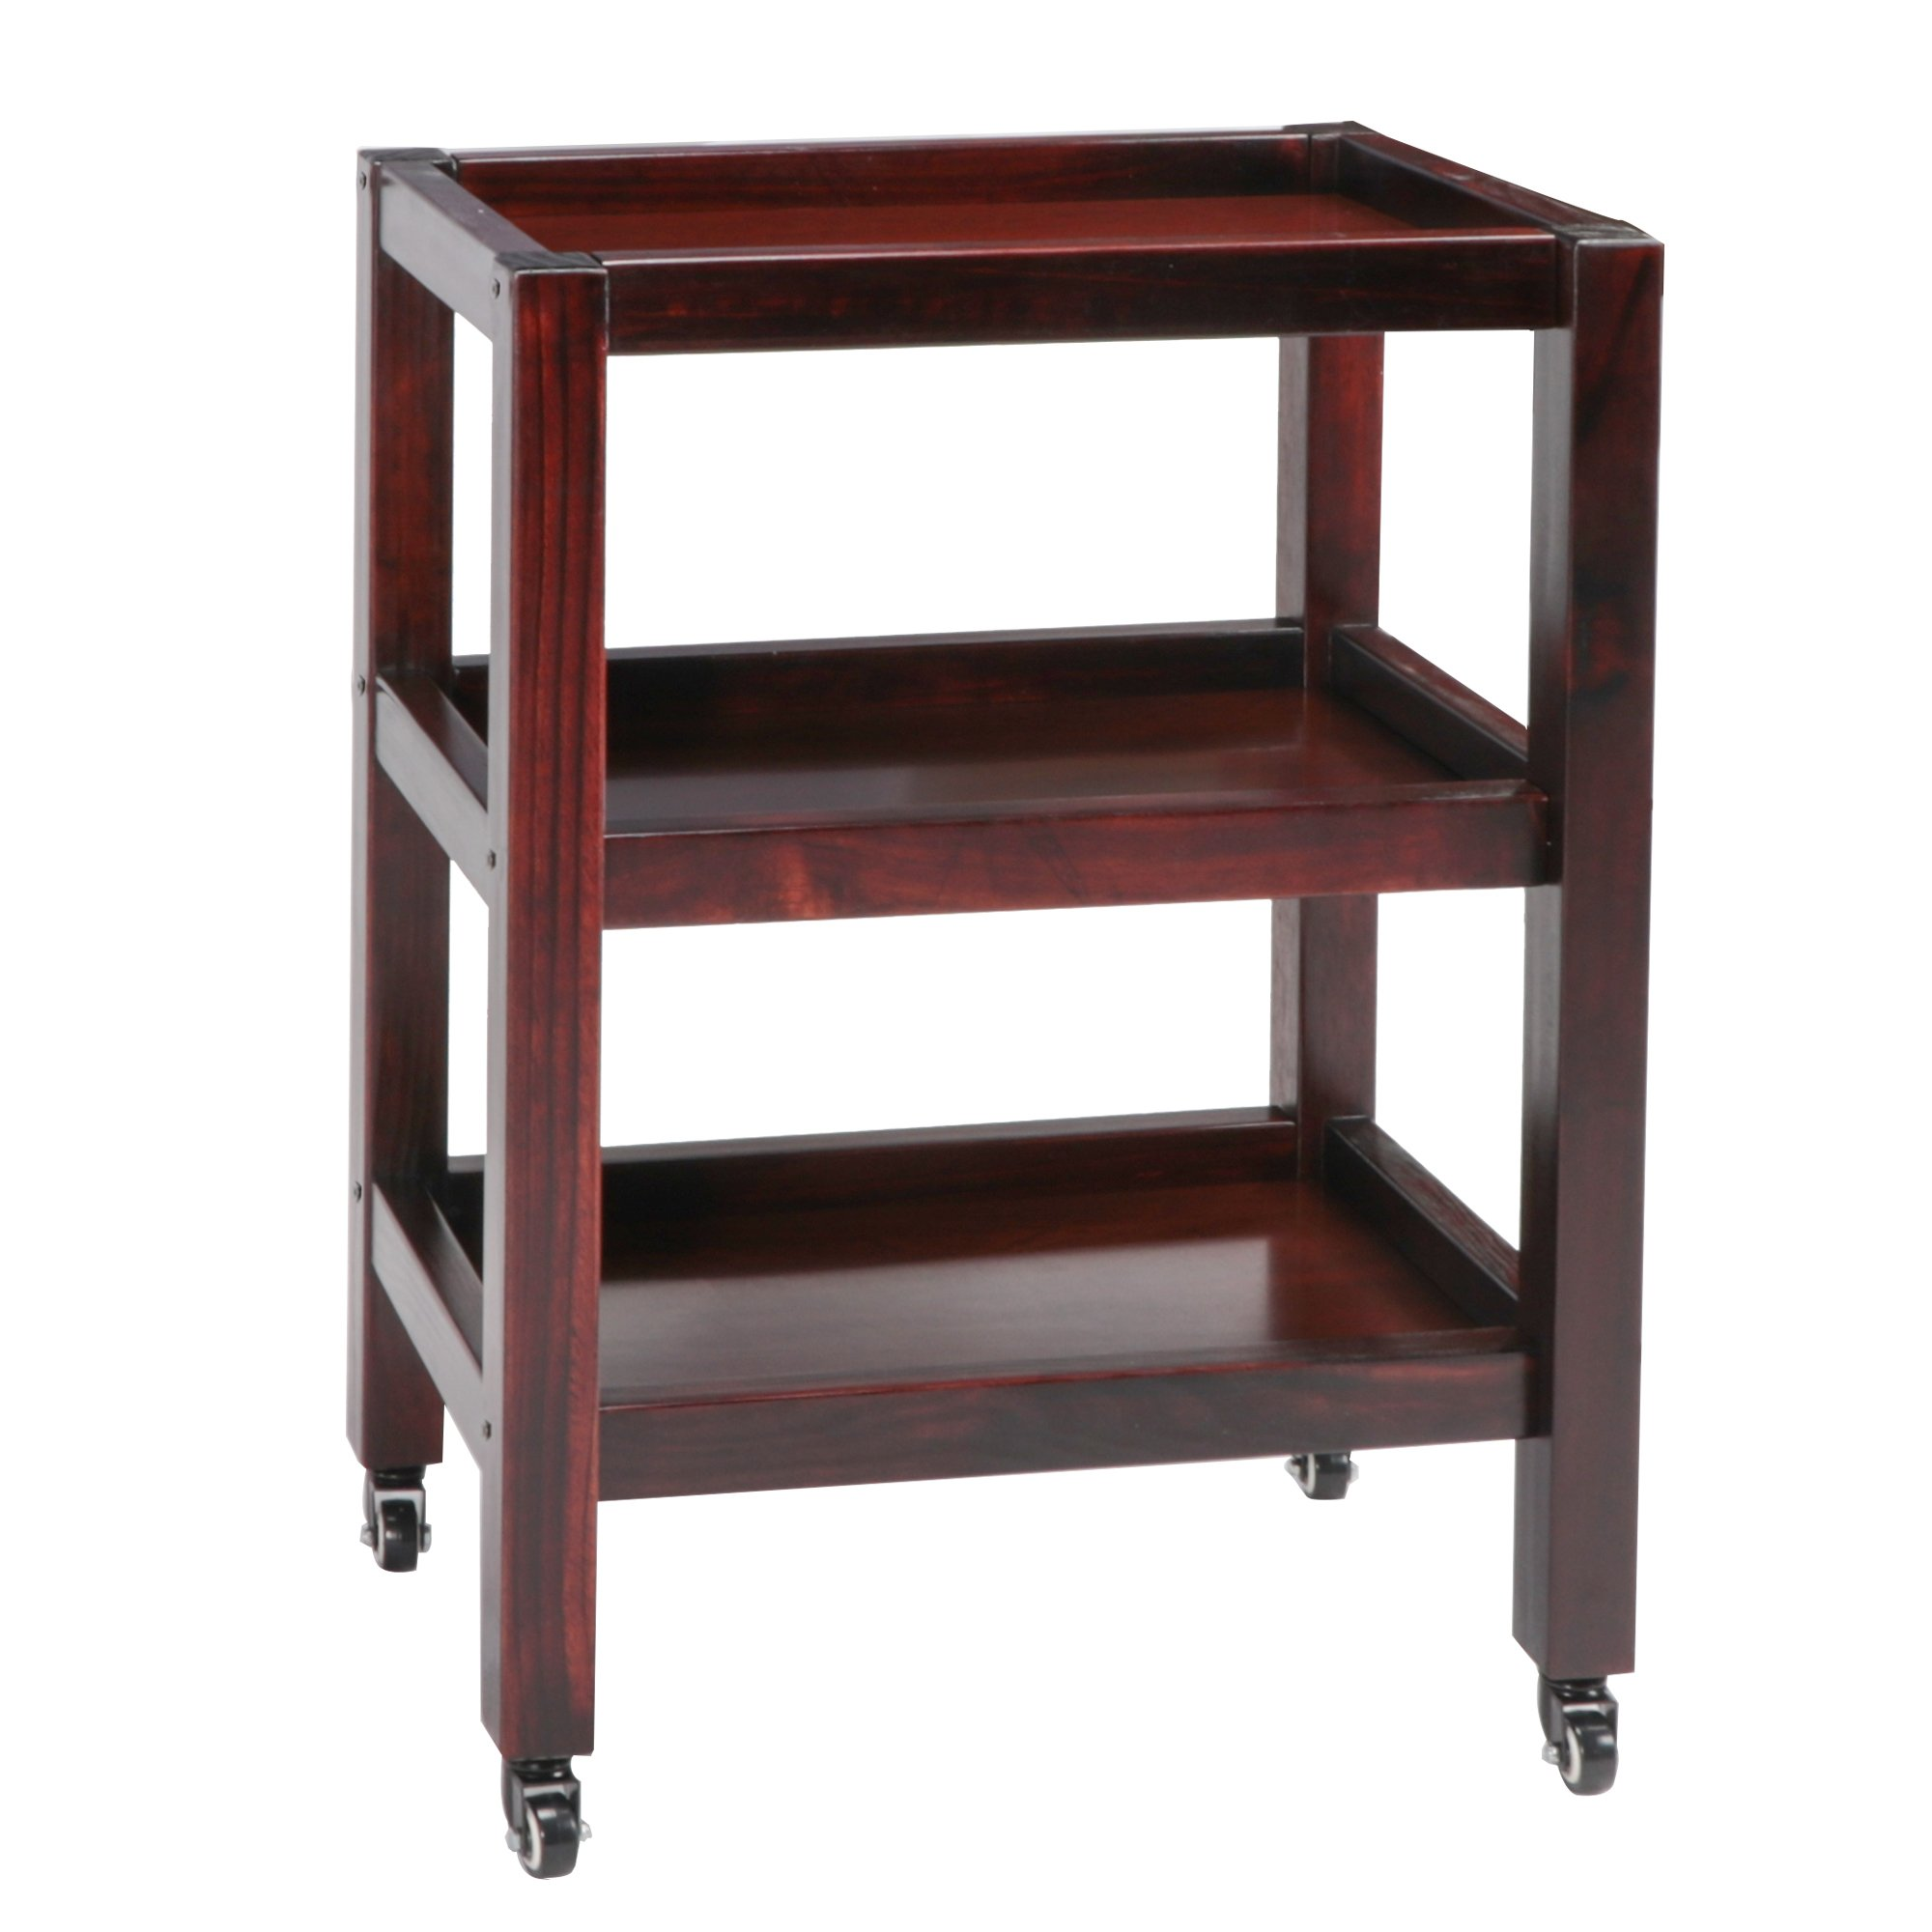 Master Massage Wooden 3-Tier Rolling Cart Large Trolley With Wheels, Walnut by Master Massage